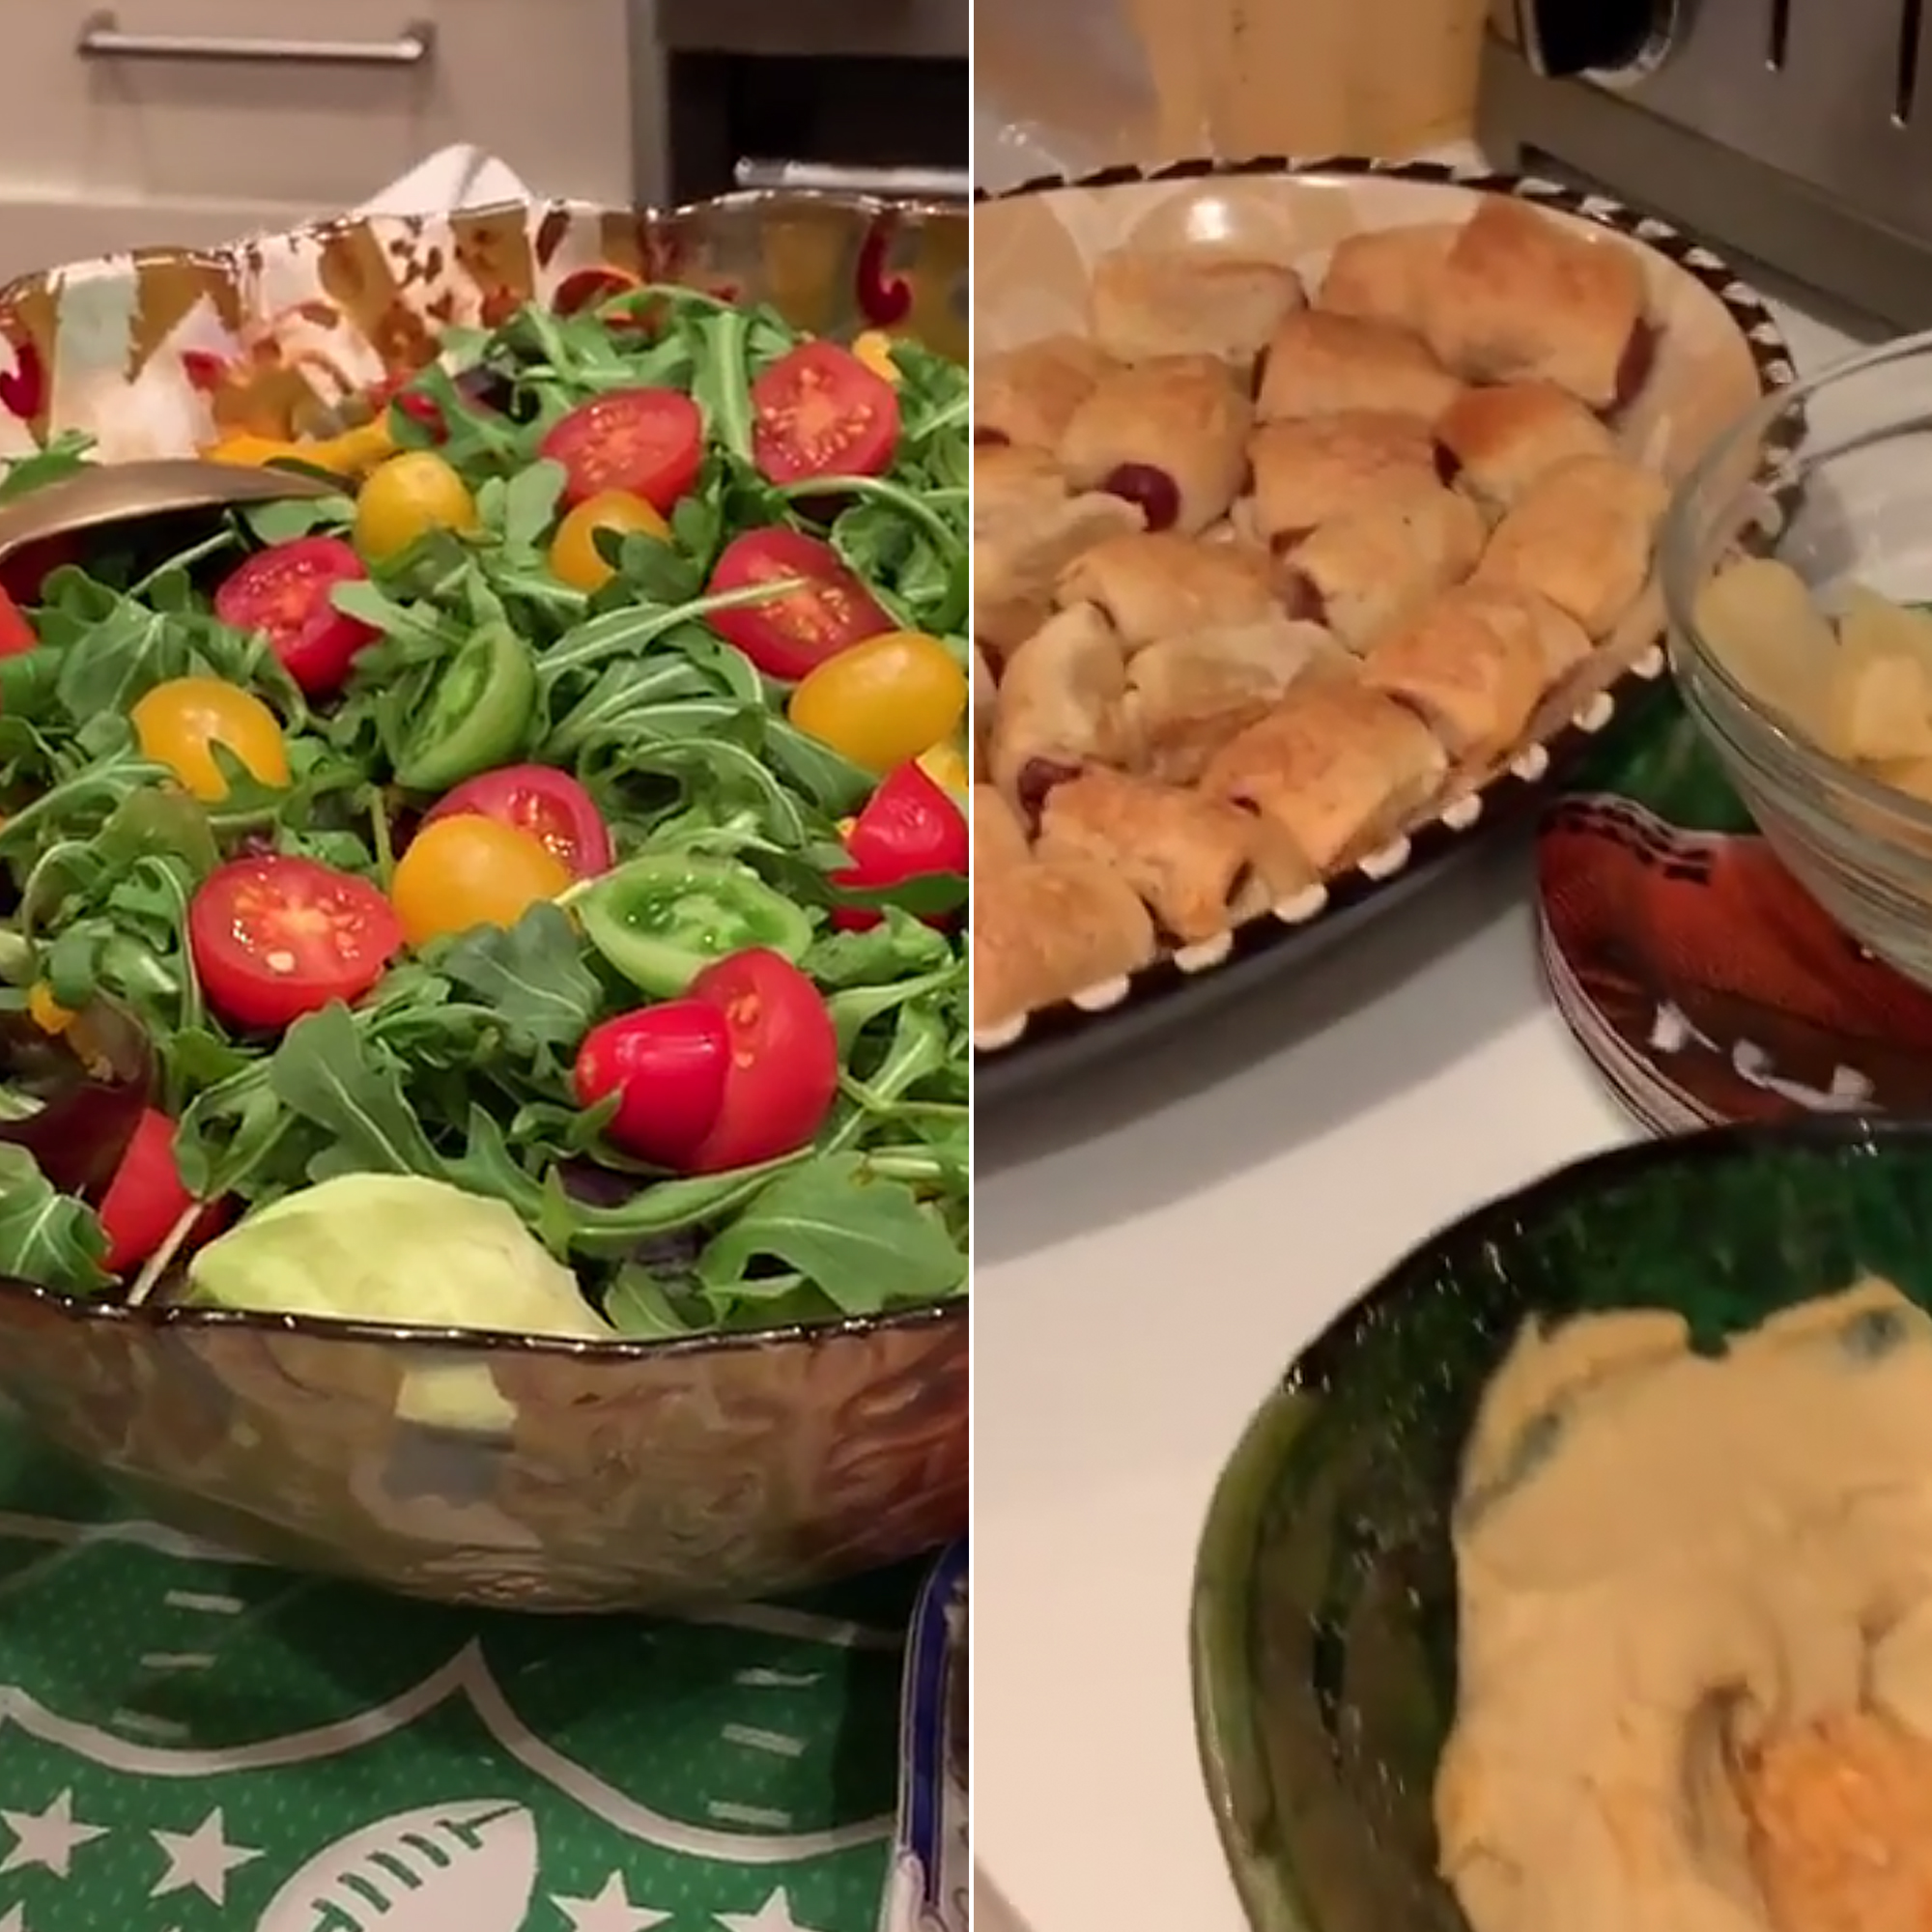 "Kelly Ripa, Bethenny Frankel and More Share Their Super Bowl Sunday Eats - The Today Show cohost threw an ""impromptu"" Super Bowl party with a myriad of food items. Judging by a post on Instagram the menu included salad, tomatoes and mozzarella, glazed ham, chicken wings, macaroni and cheese, pigs in a blanket and plenty of chips and dips."